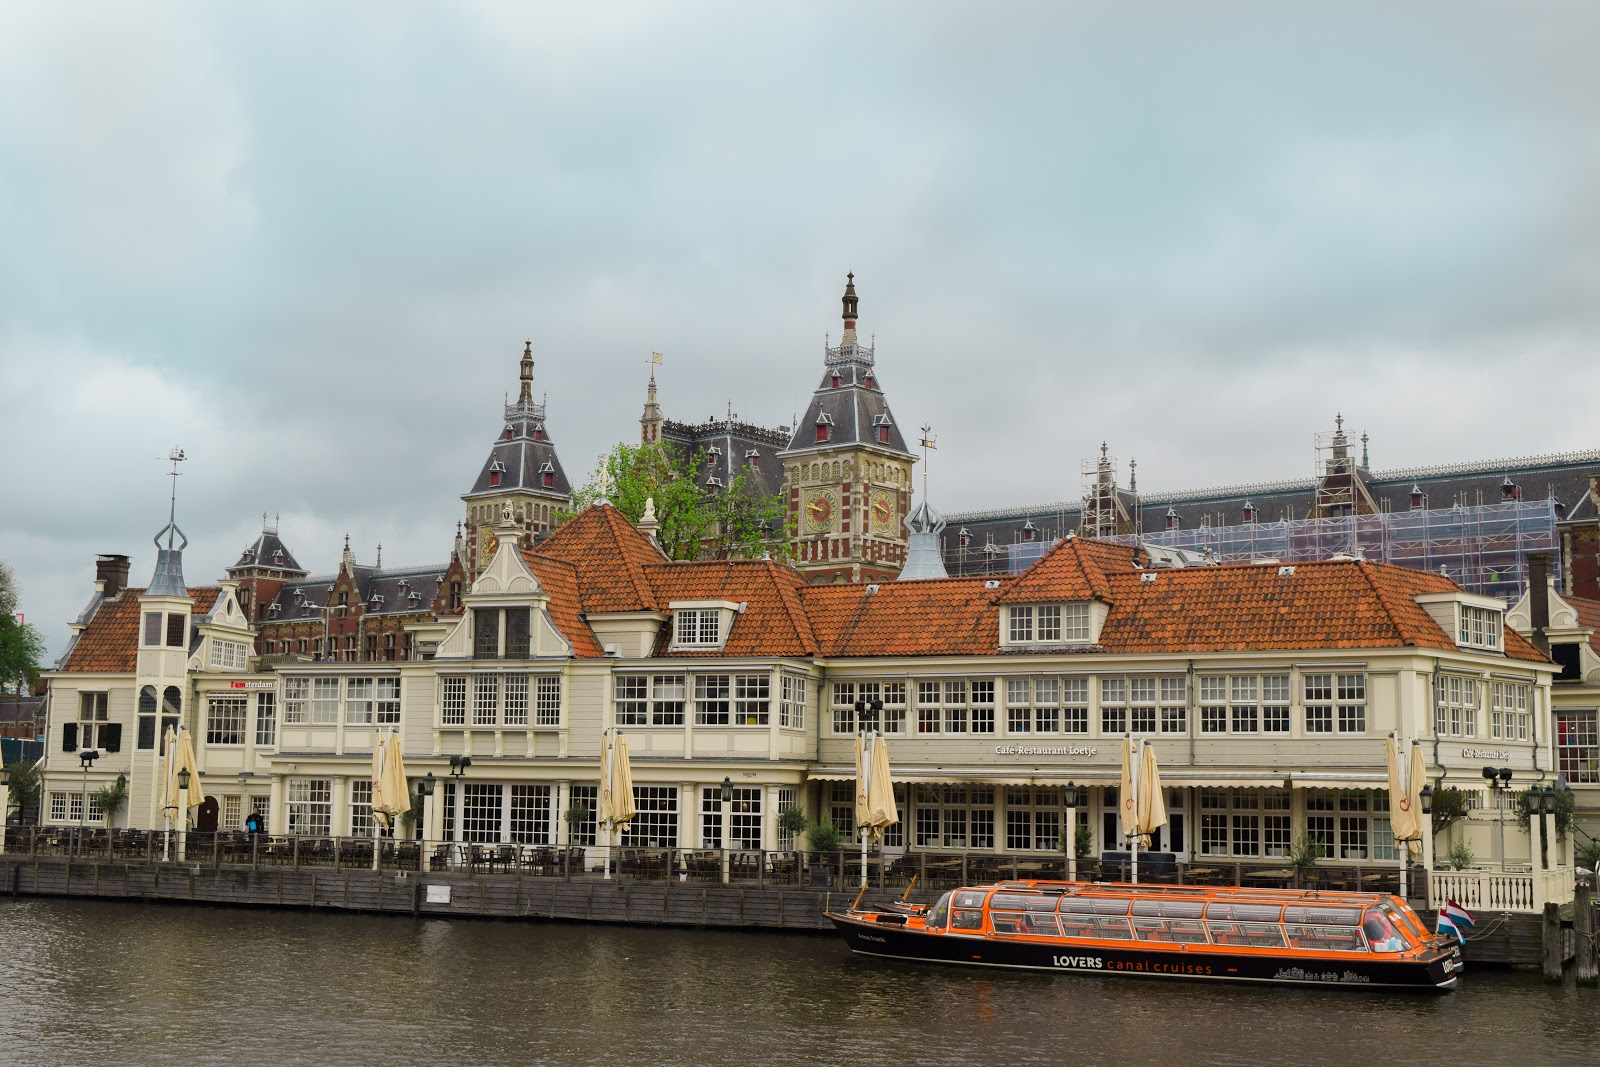 48 hours in Amsterdam: How to Make the Best of Your Time